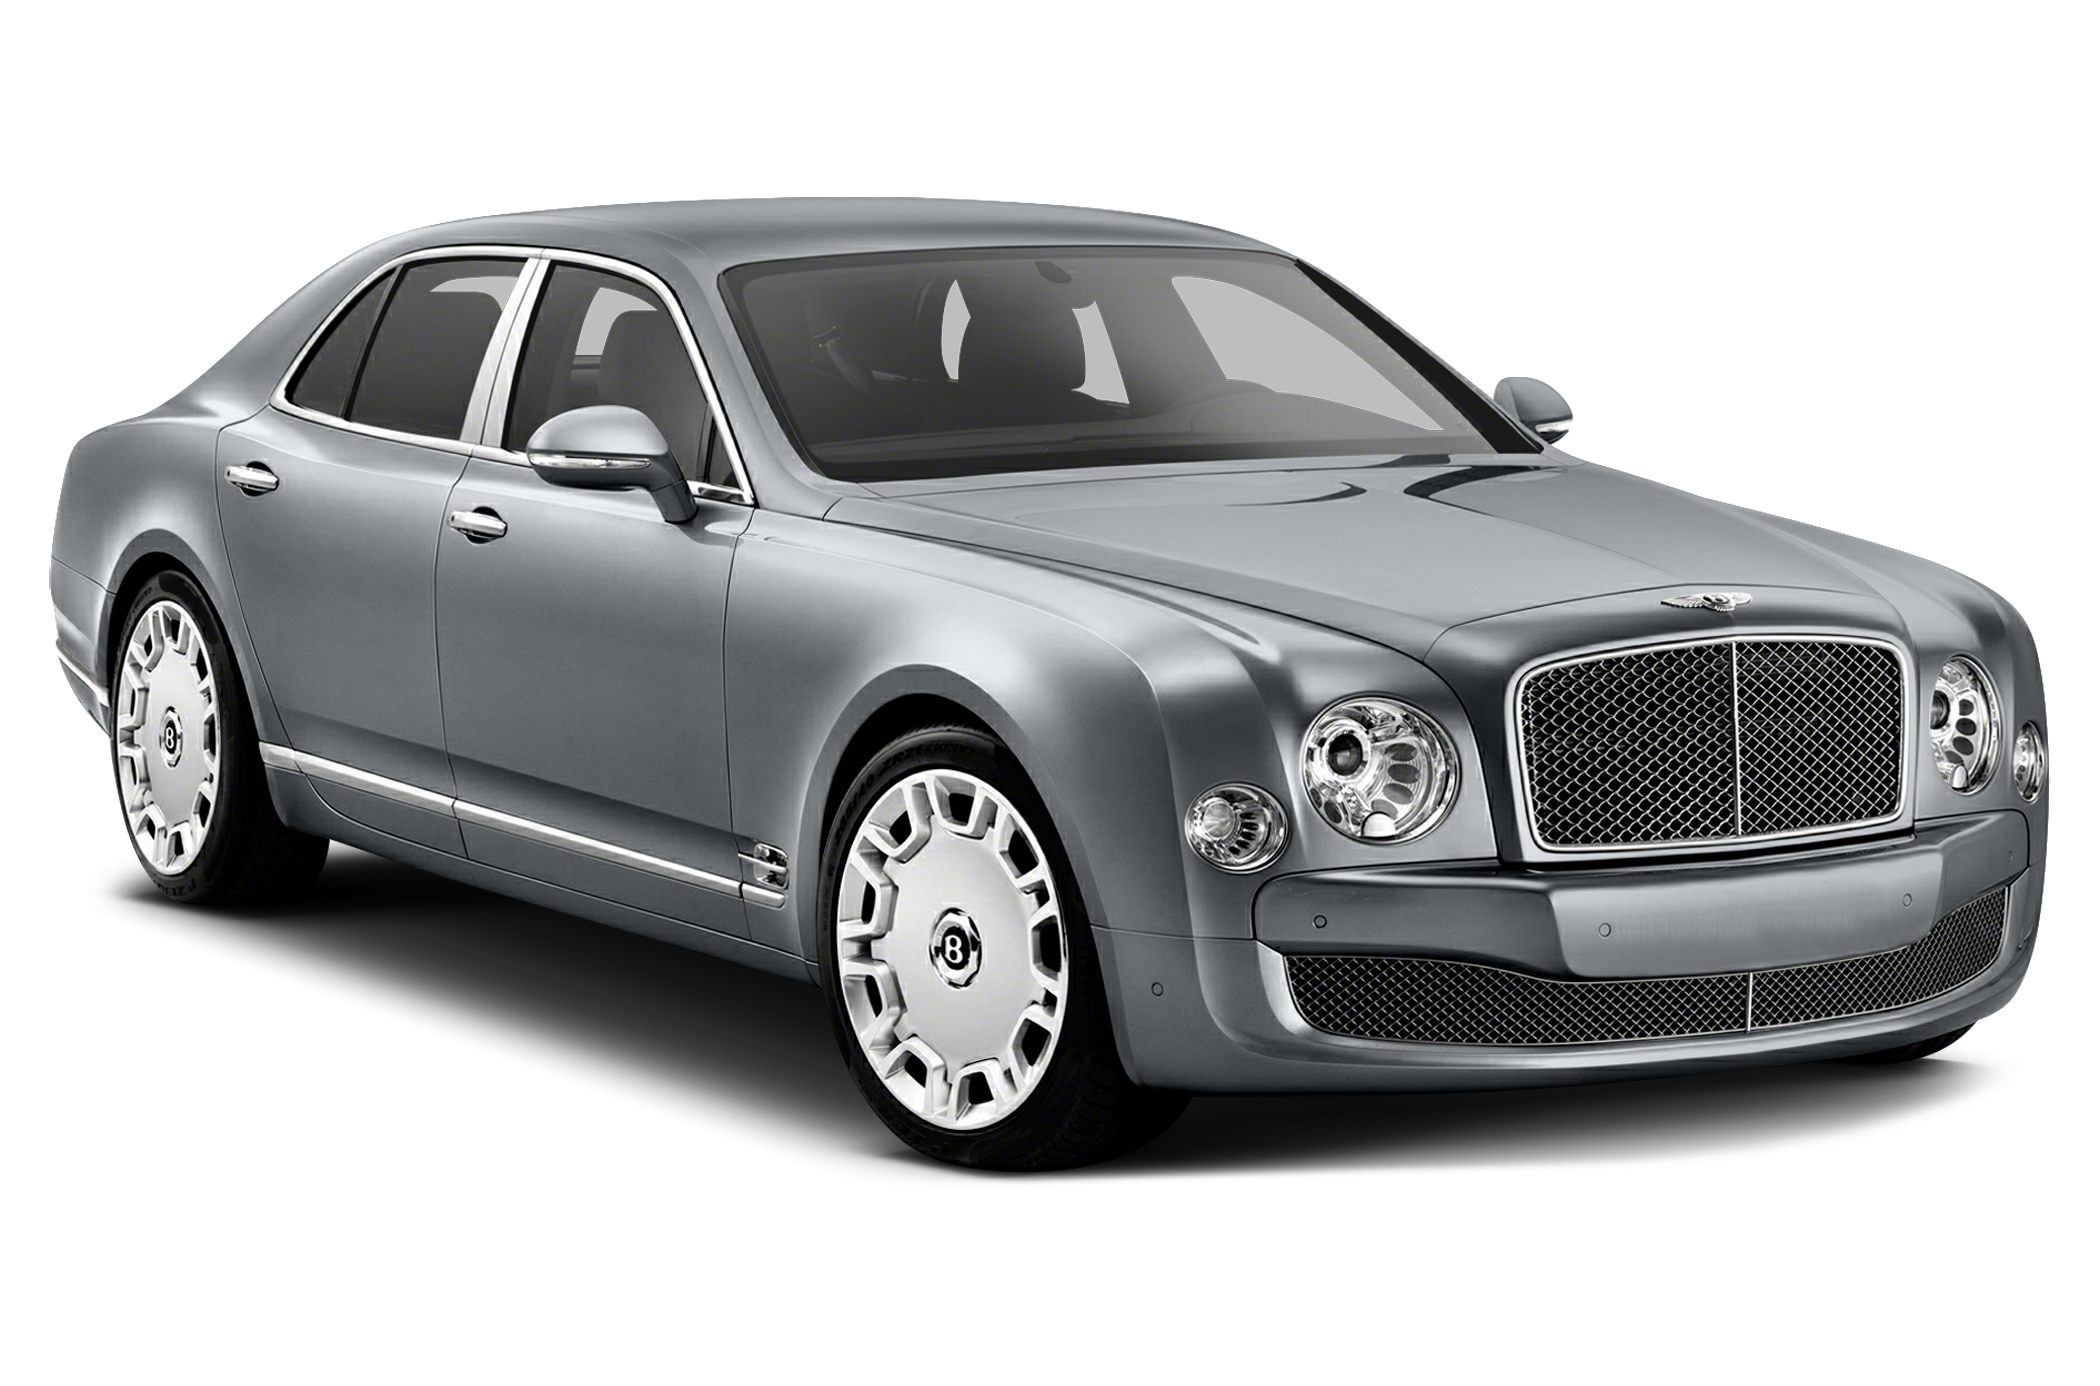 2015 Bentley Mulsanne Base Sedan for sale in Margate for $368,050 with 41 miles.